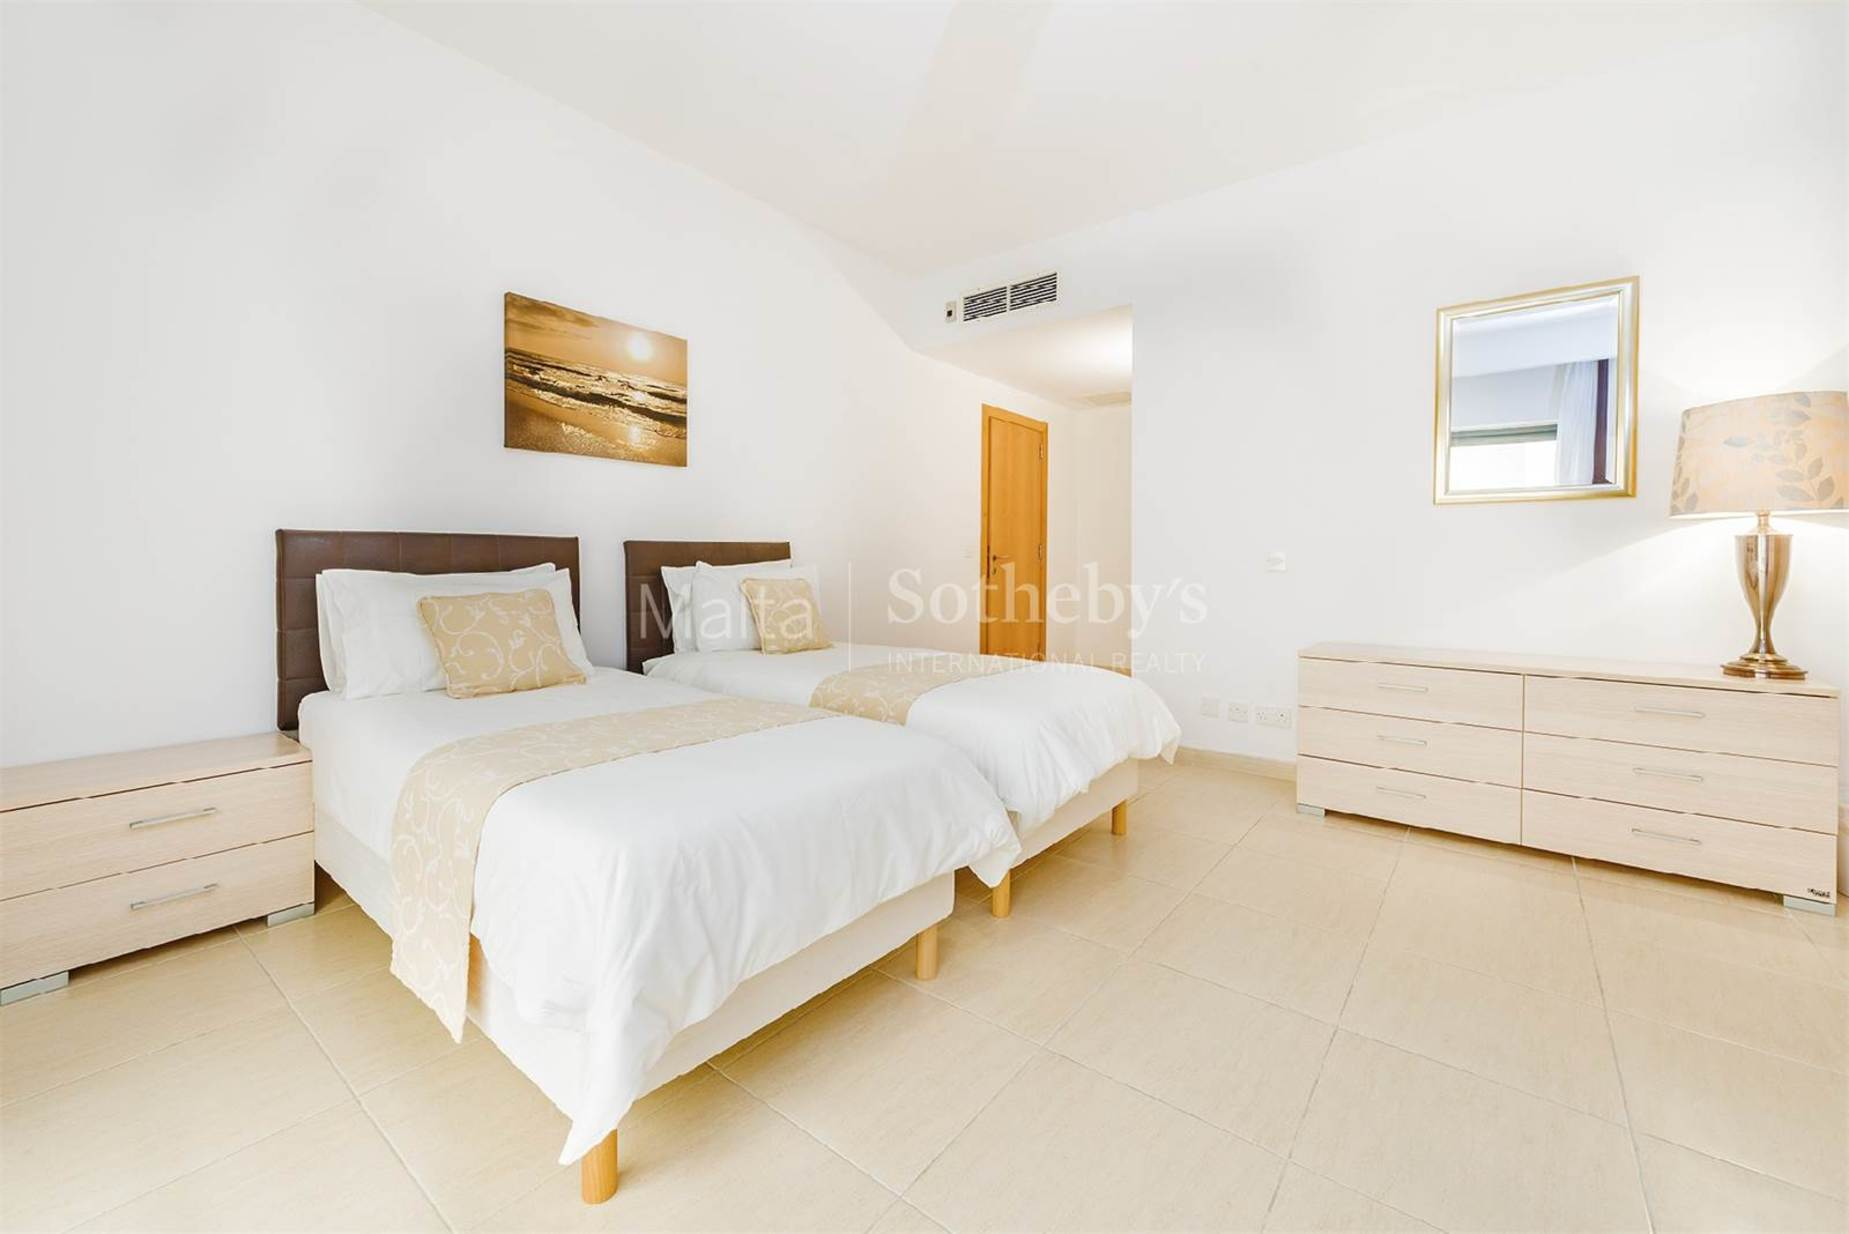 3 bed Apartment For Rent in Mellieha, Mellieha - thumb 16